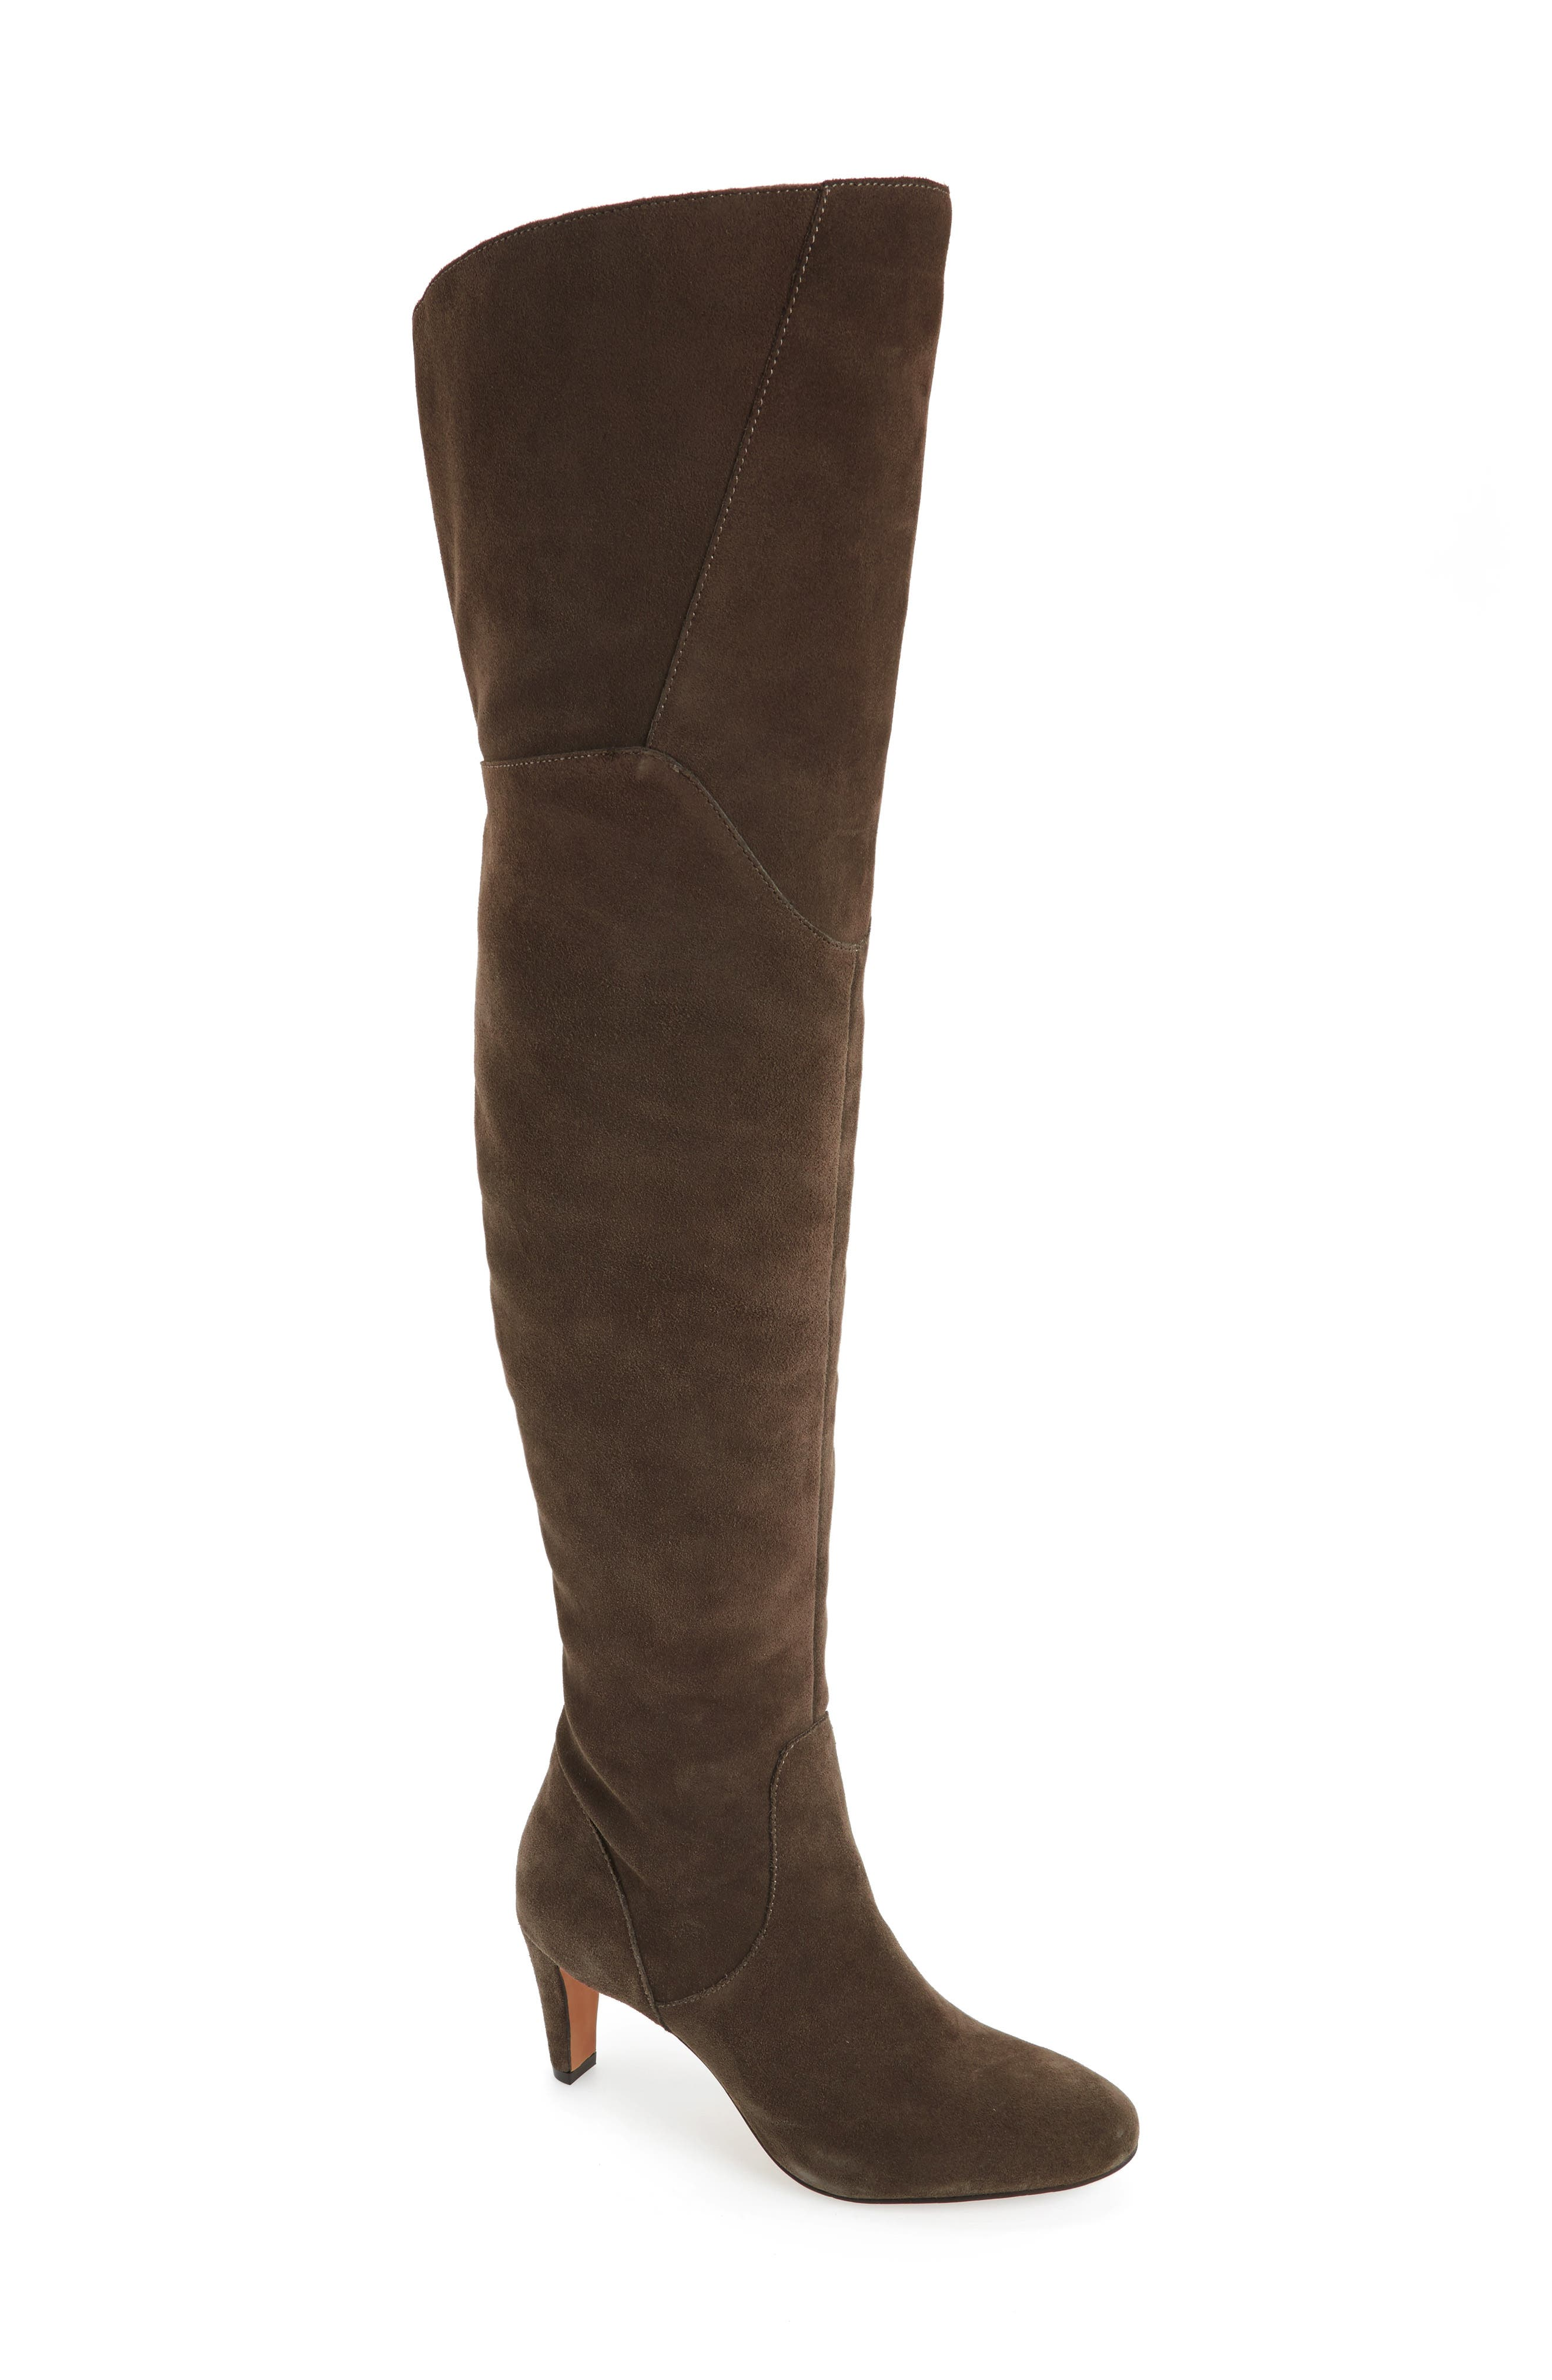 Armaceli Over the Knee Boot,                             Main thumbnail 4, color,